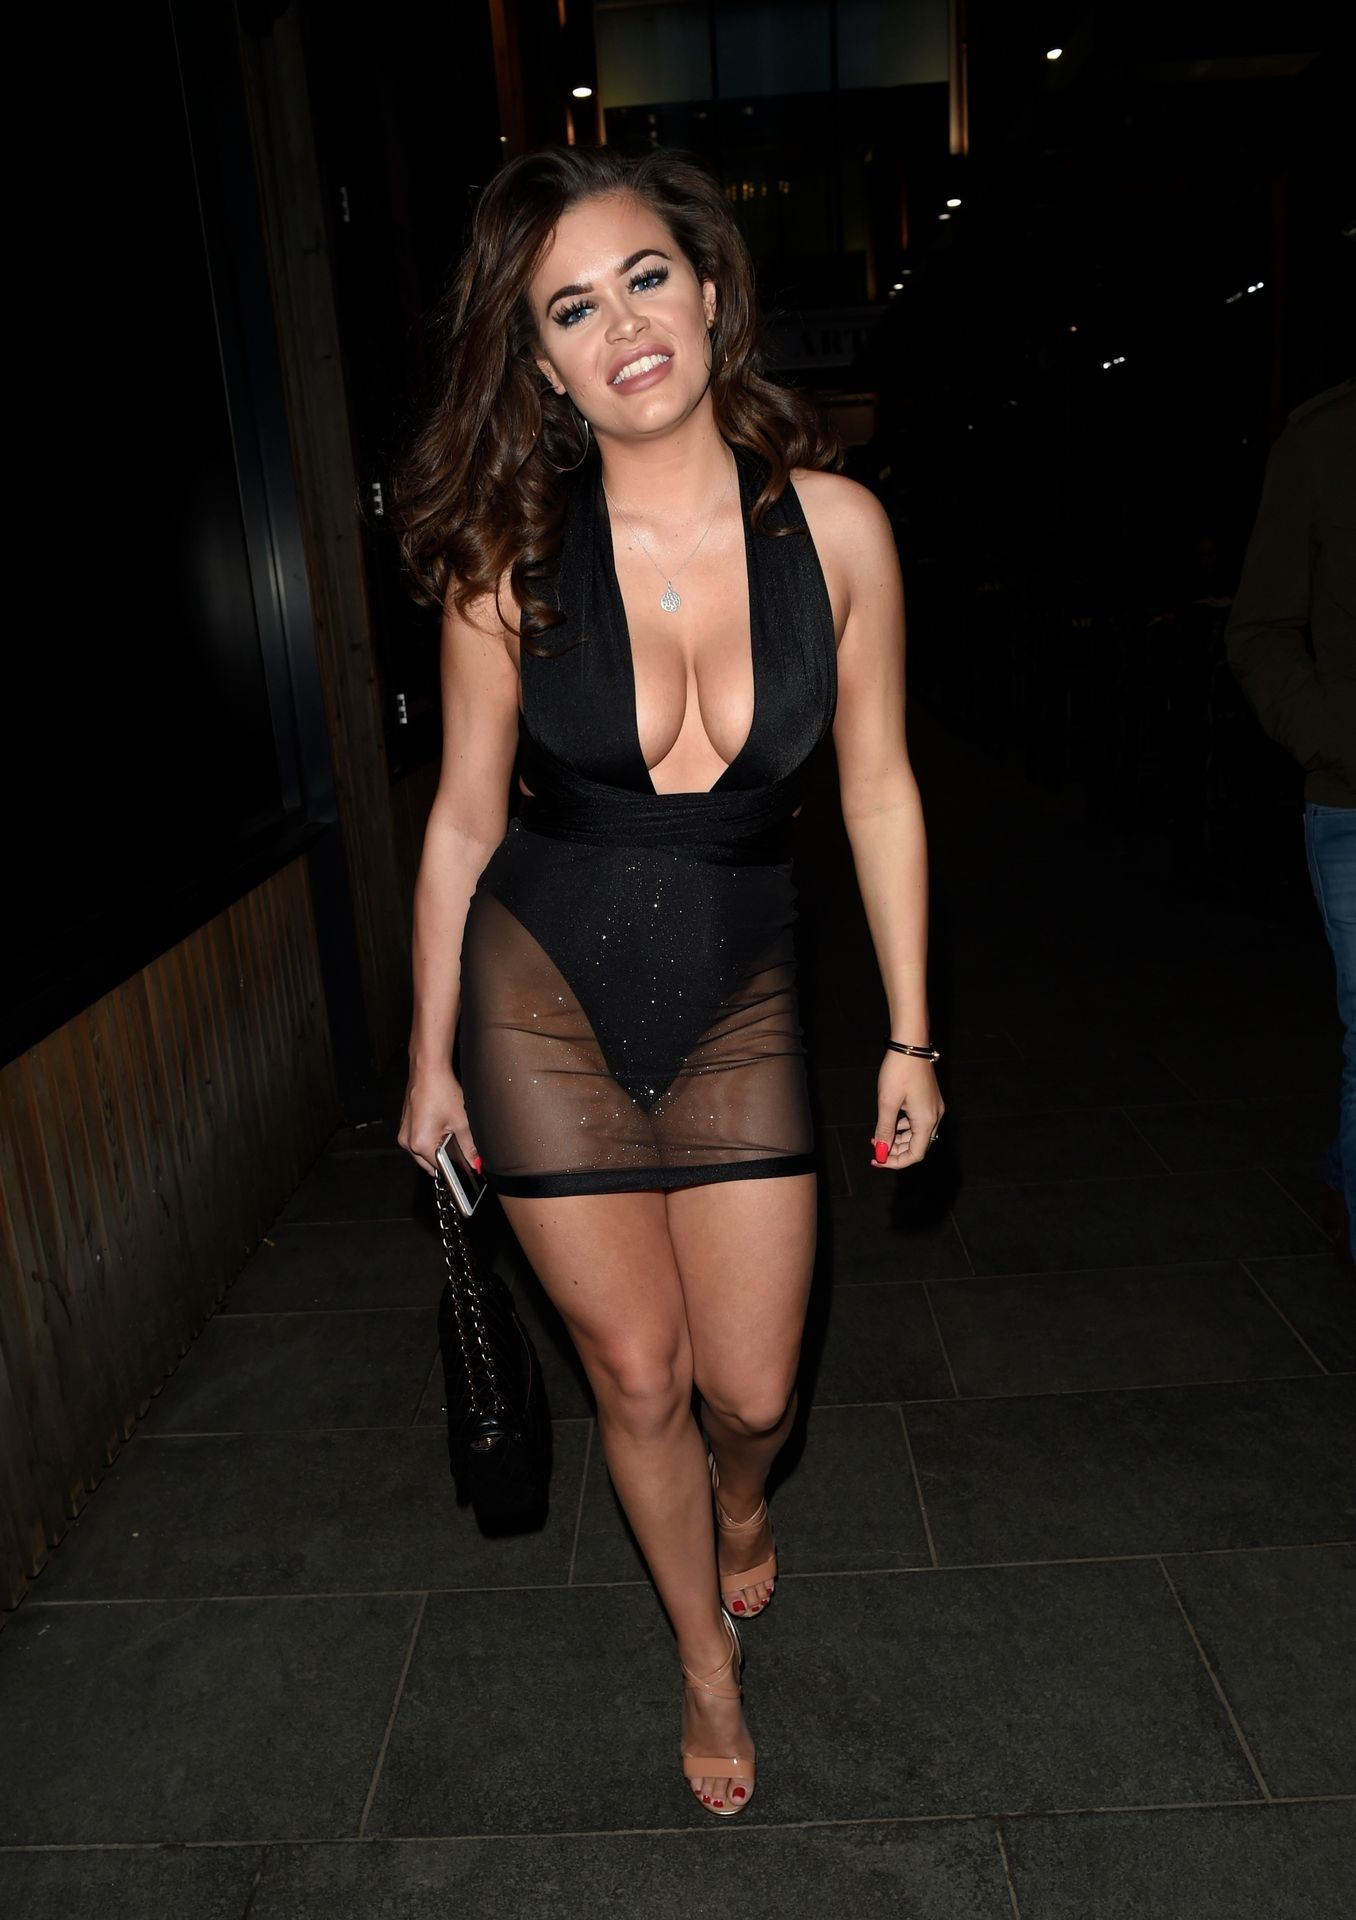 Rhianne Saxby & Sarah Longbottom Look Hot In Manchester 0003